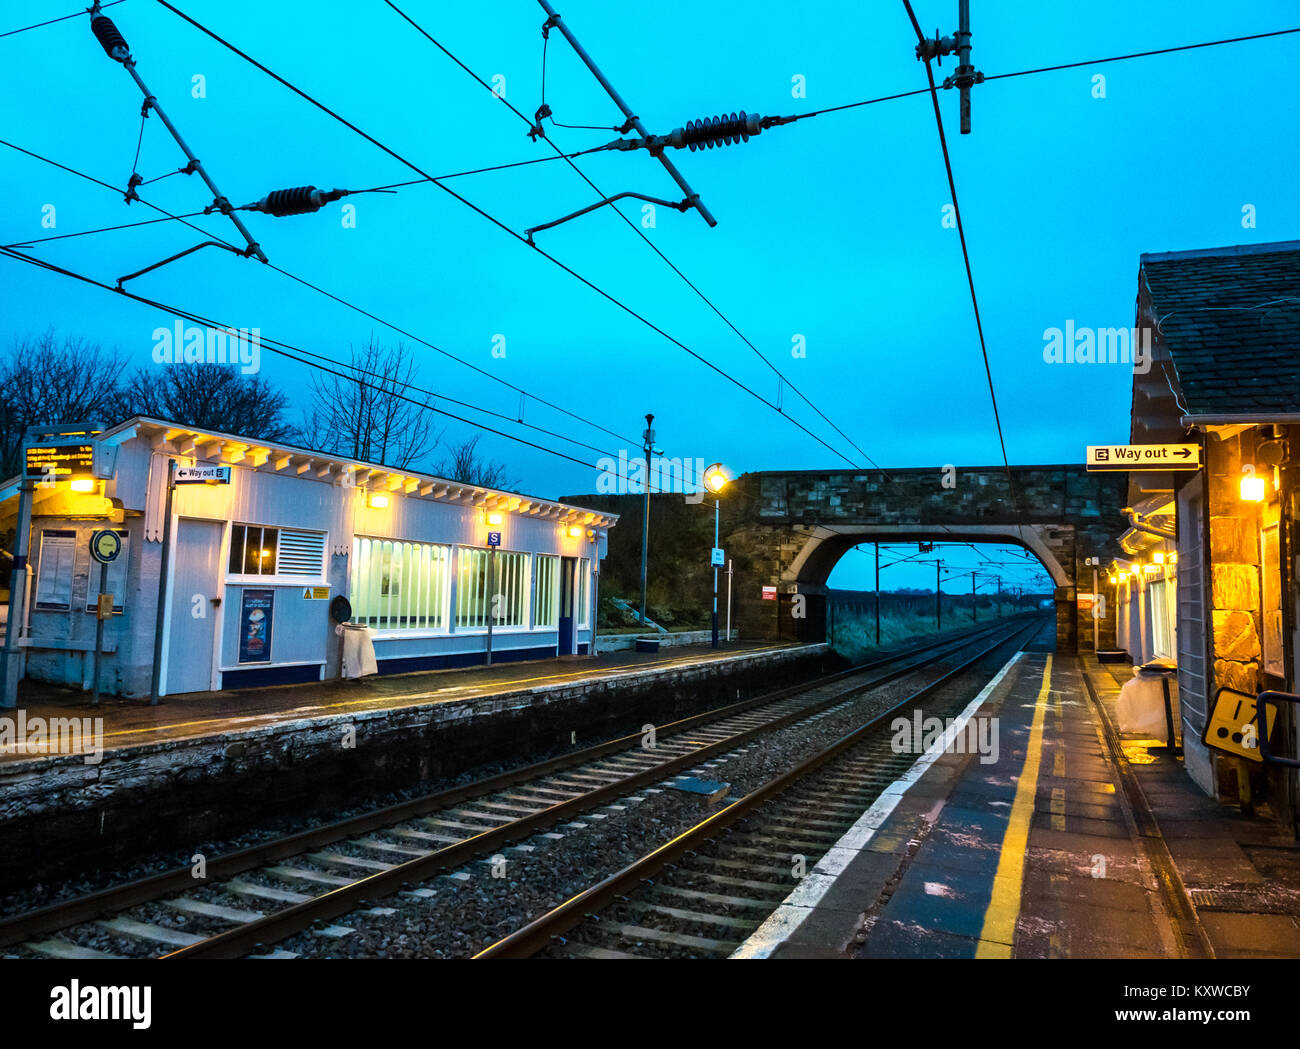 Drem Railway Station, East Lothian, Scotland, UK, at dusk with lights on and Way Out sign lit up - Stock Image